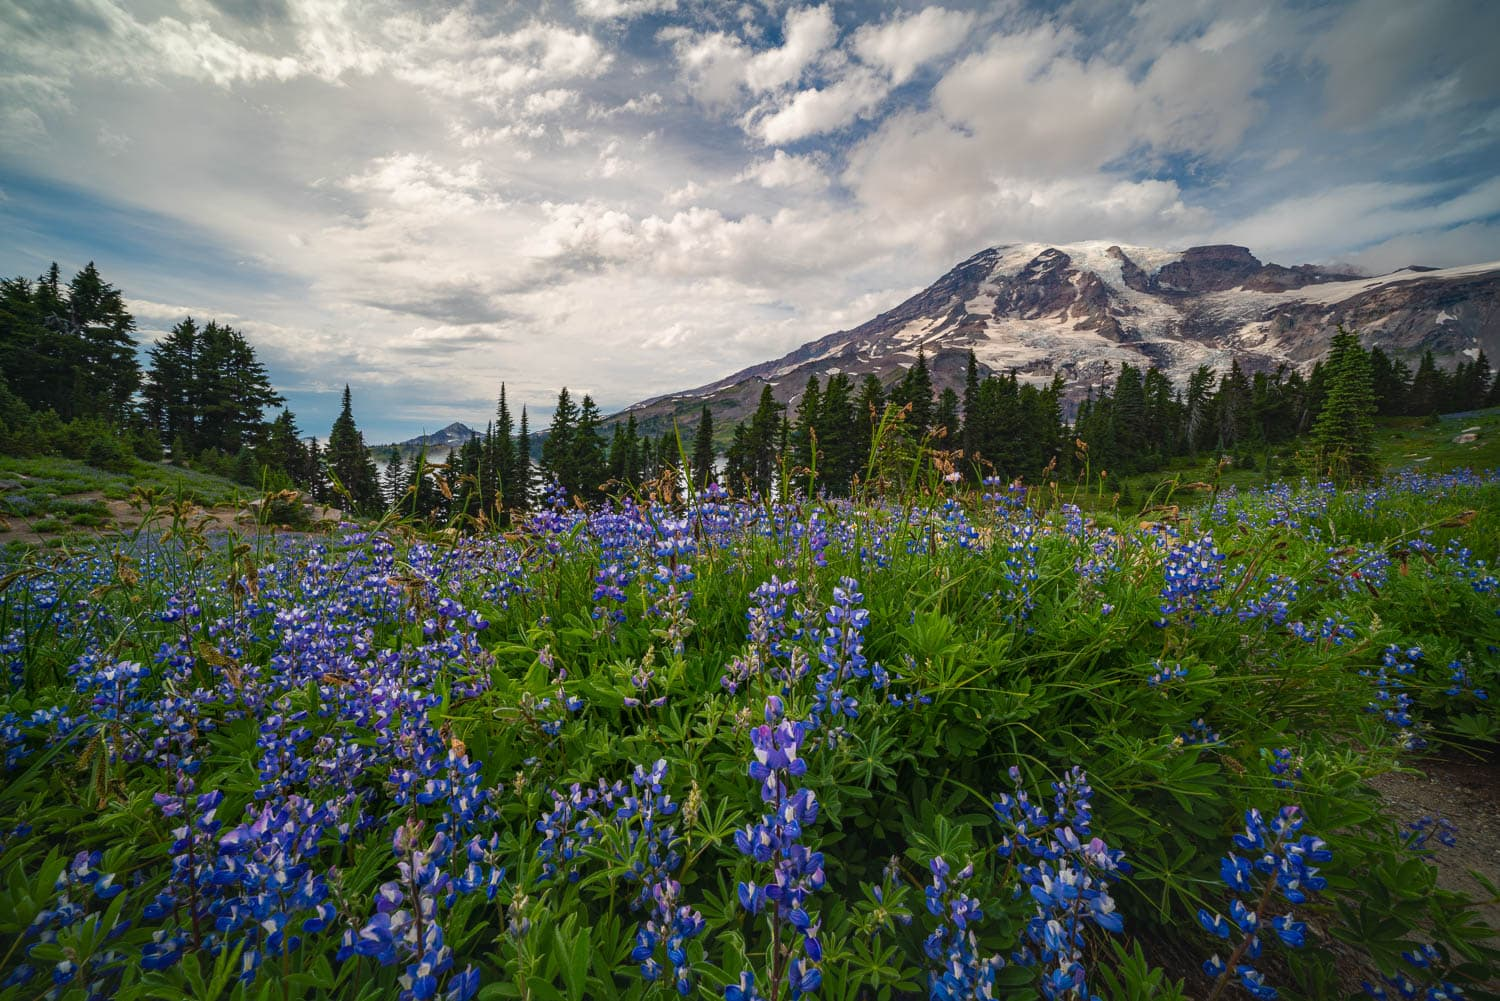 Field of purple lupine beneath a cloud sky and mountain peak